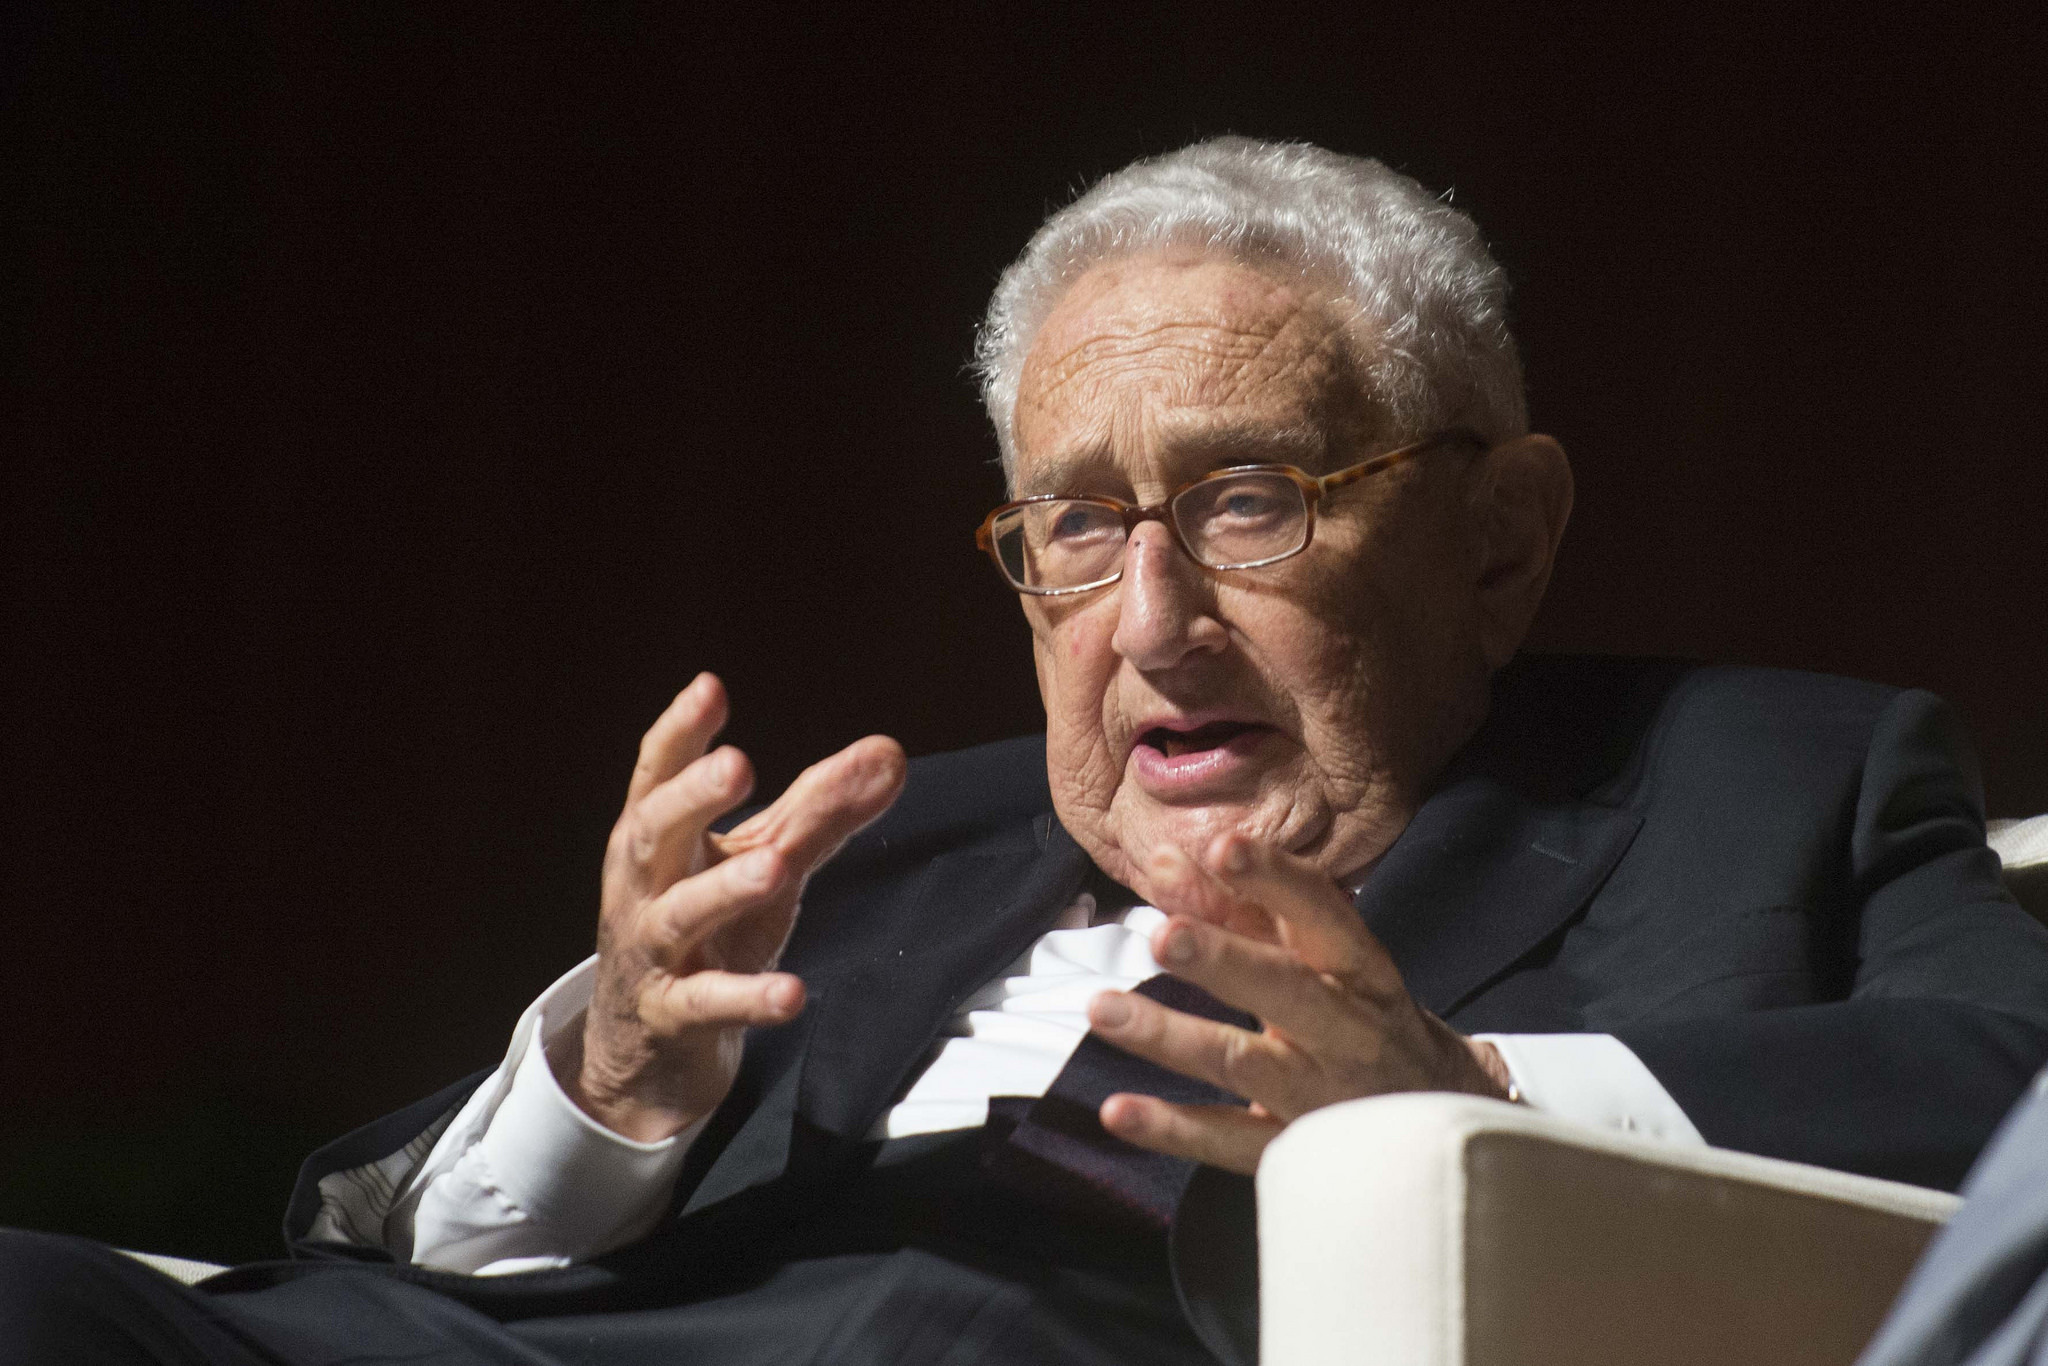 La geopolitica dell'India e del Pakistan secondo Henry Kissinger (5)